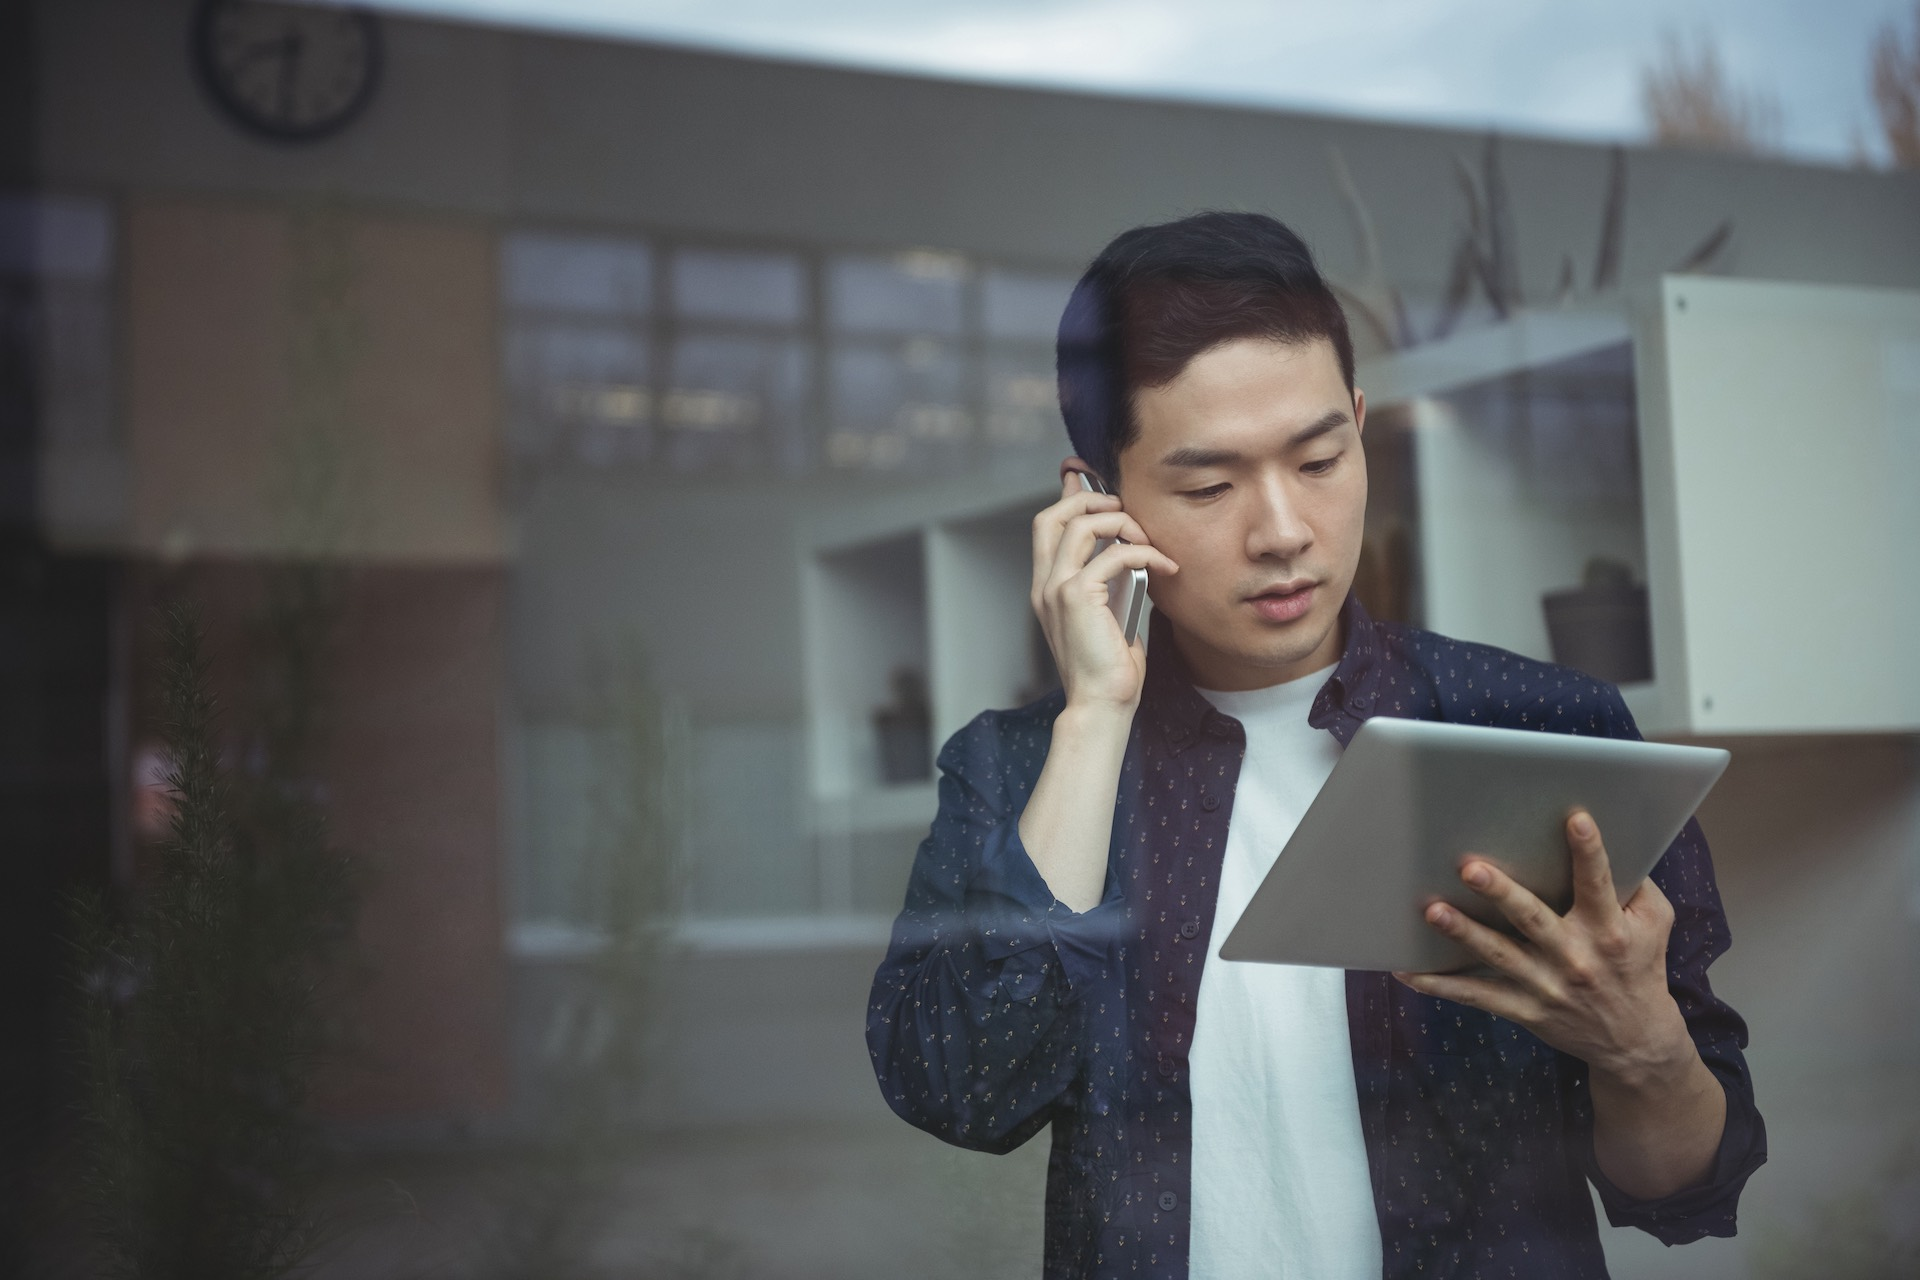 Business executive talking on mobile phone while using digital tablet in office